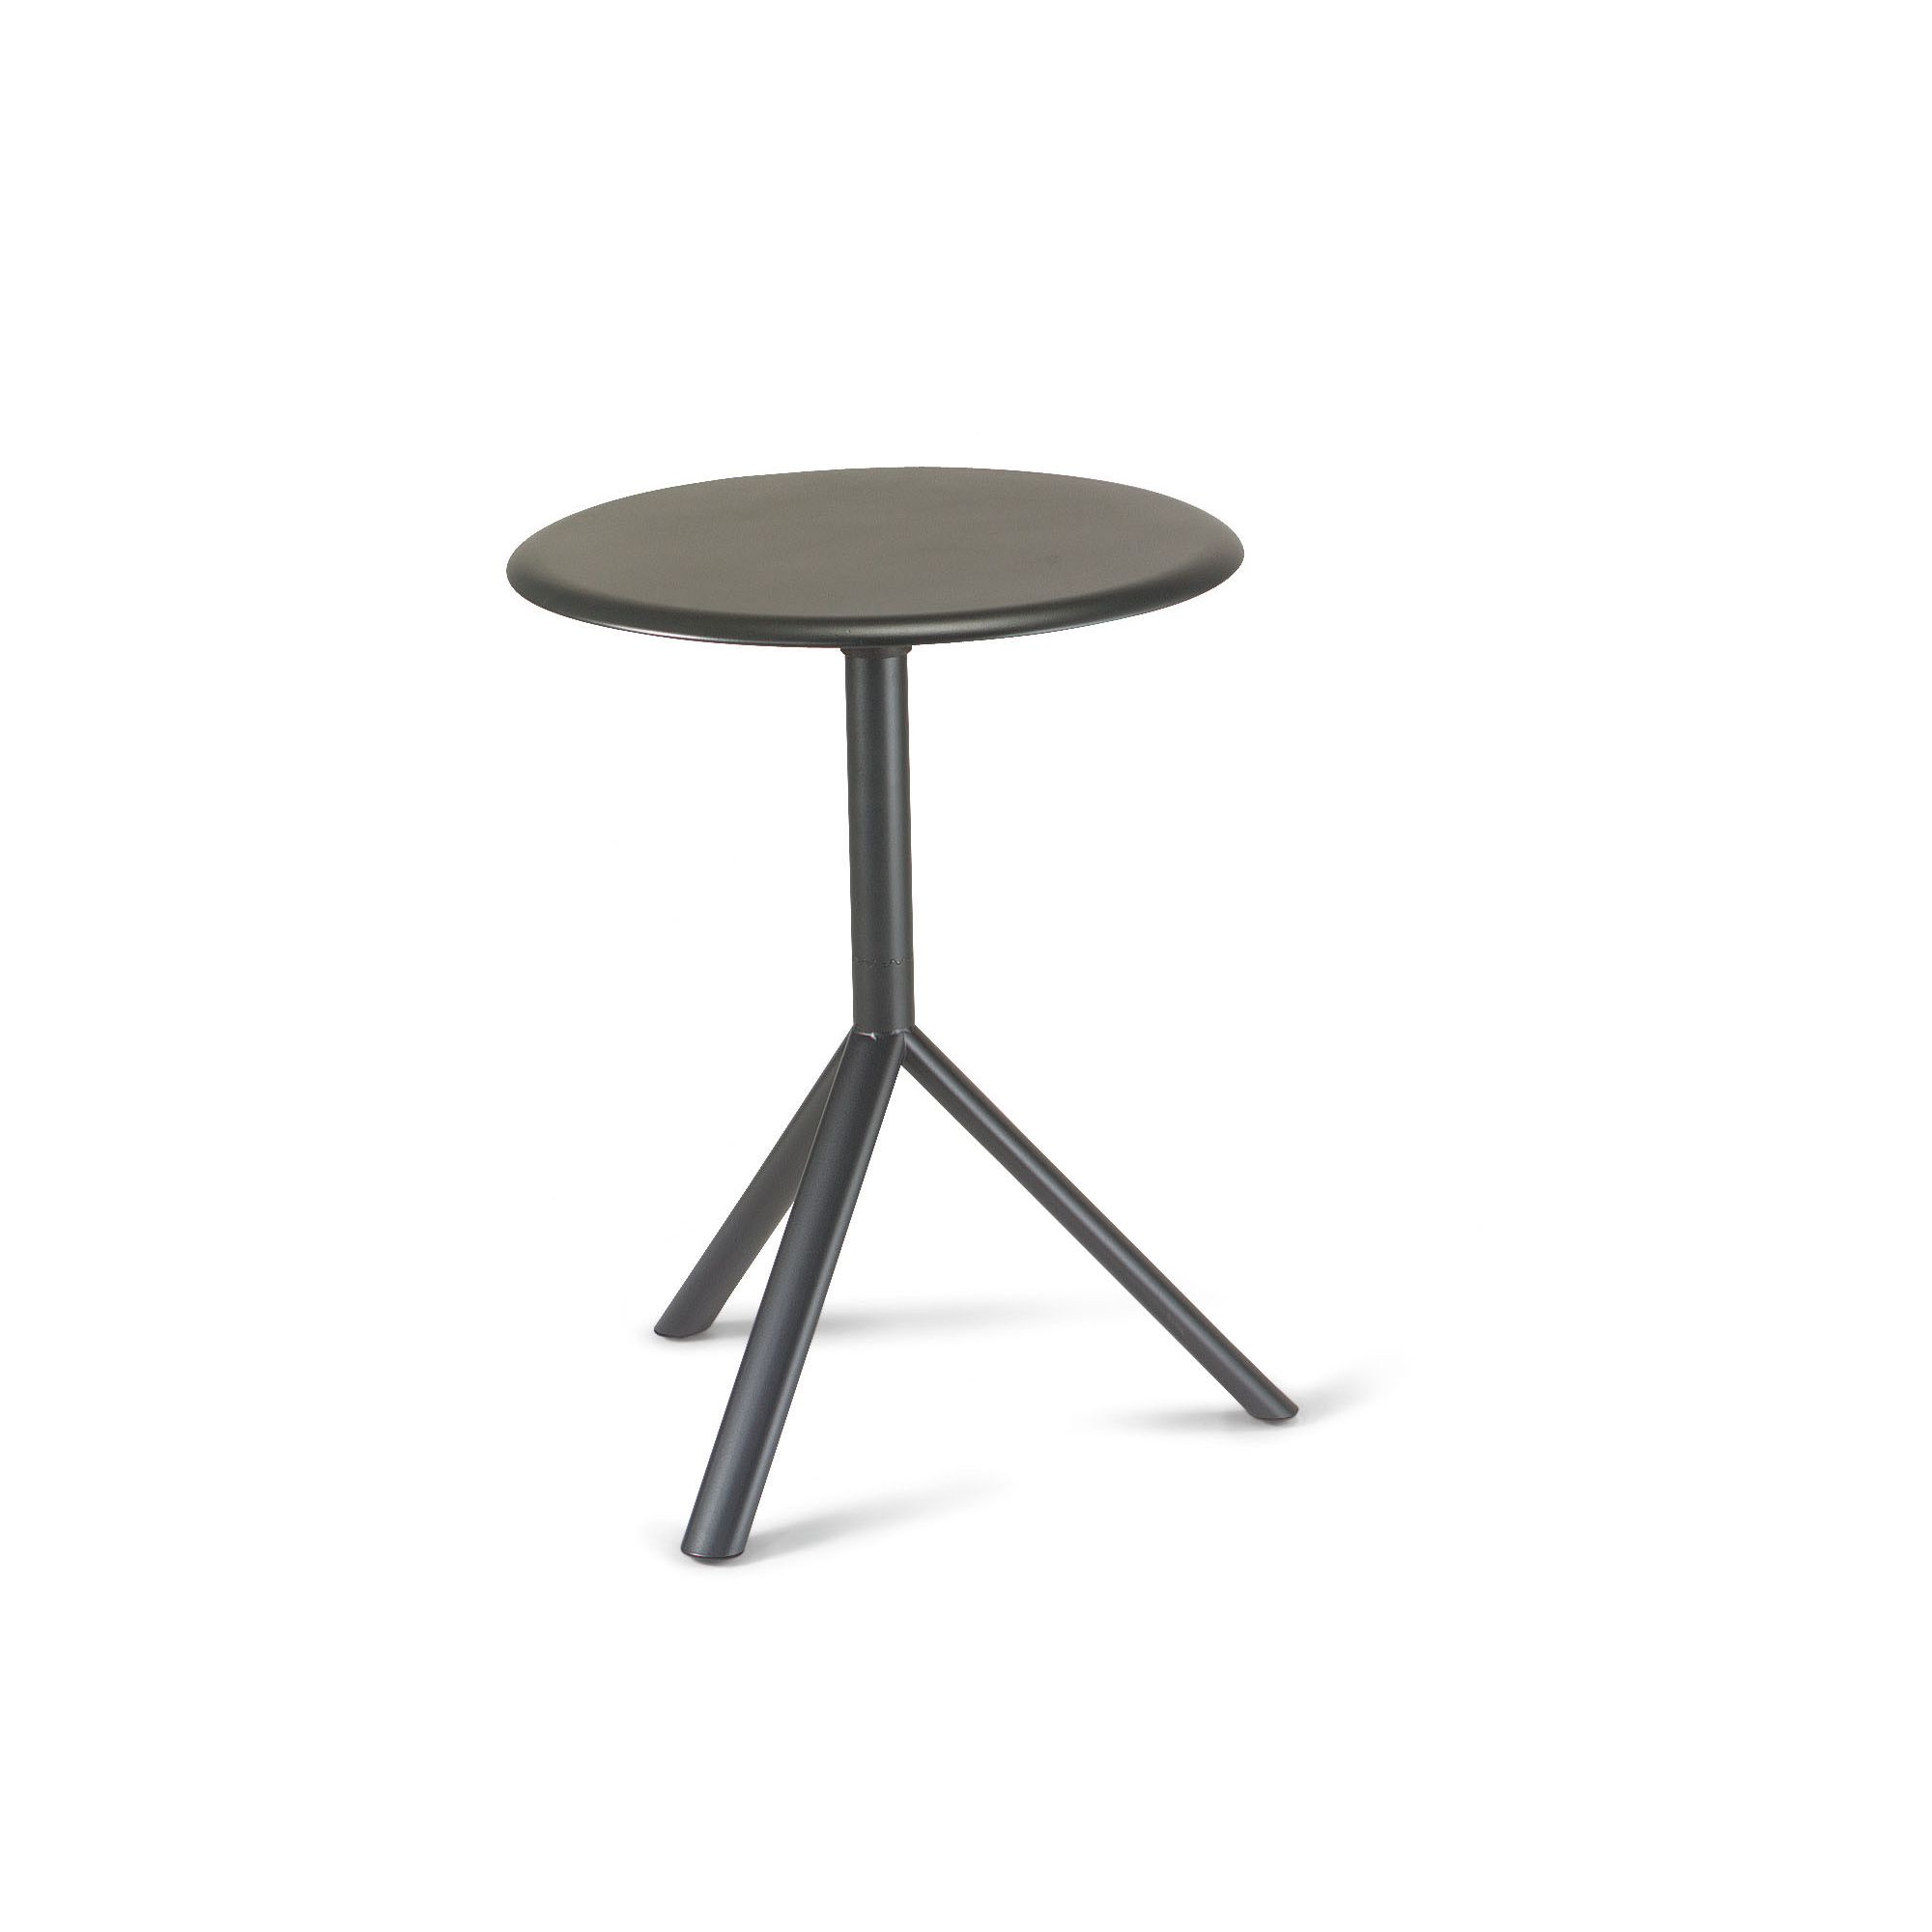 Plank Miura Round Table with High Pressure Laminate Top - 73cm - Black at Tesco Direct